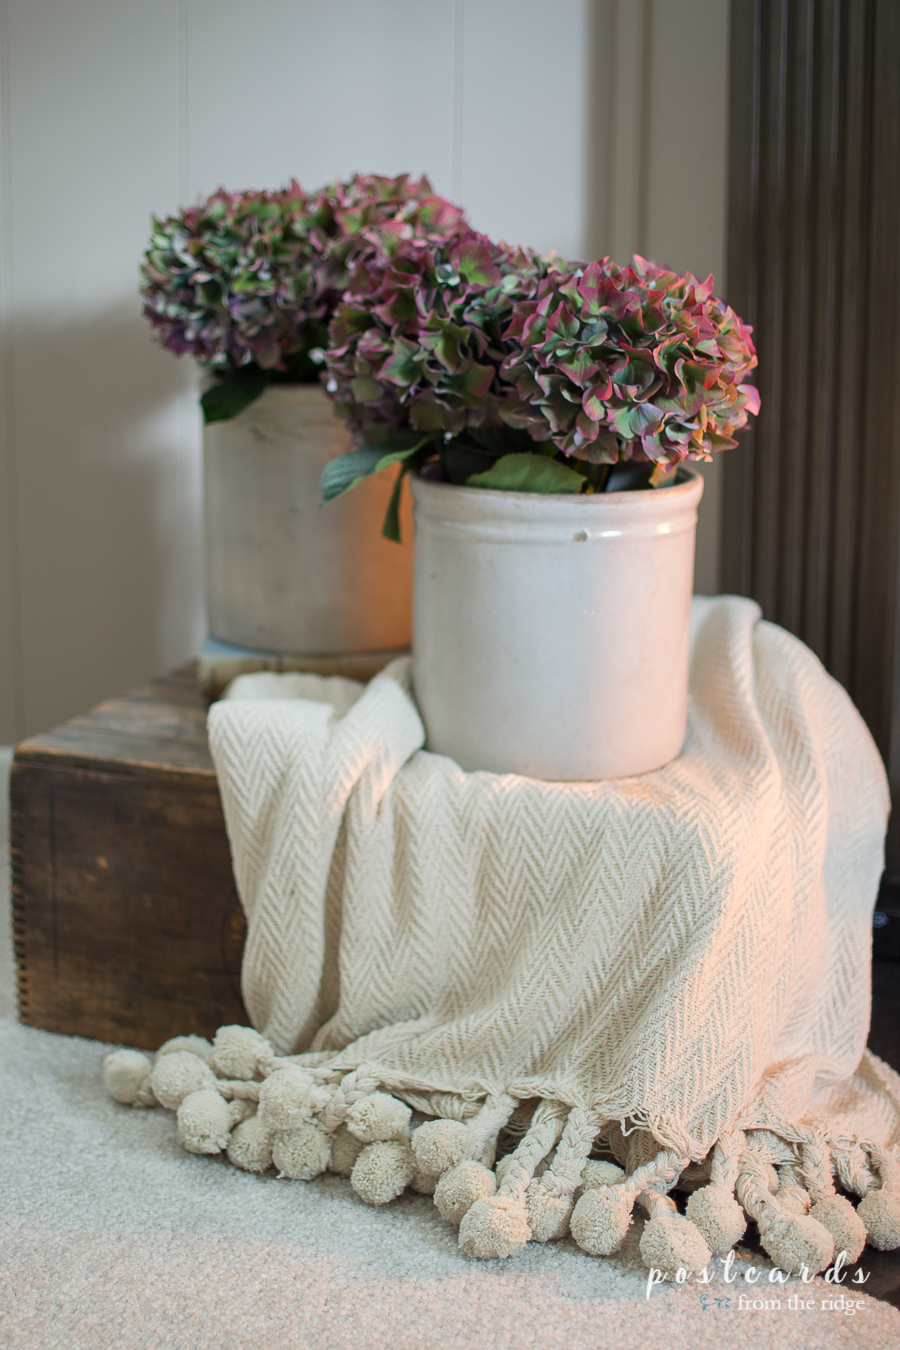 cozy throw blanket with pom poms and hydrangeas